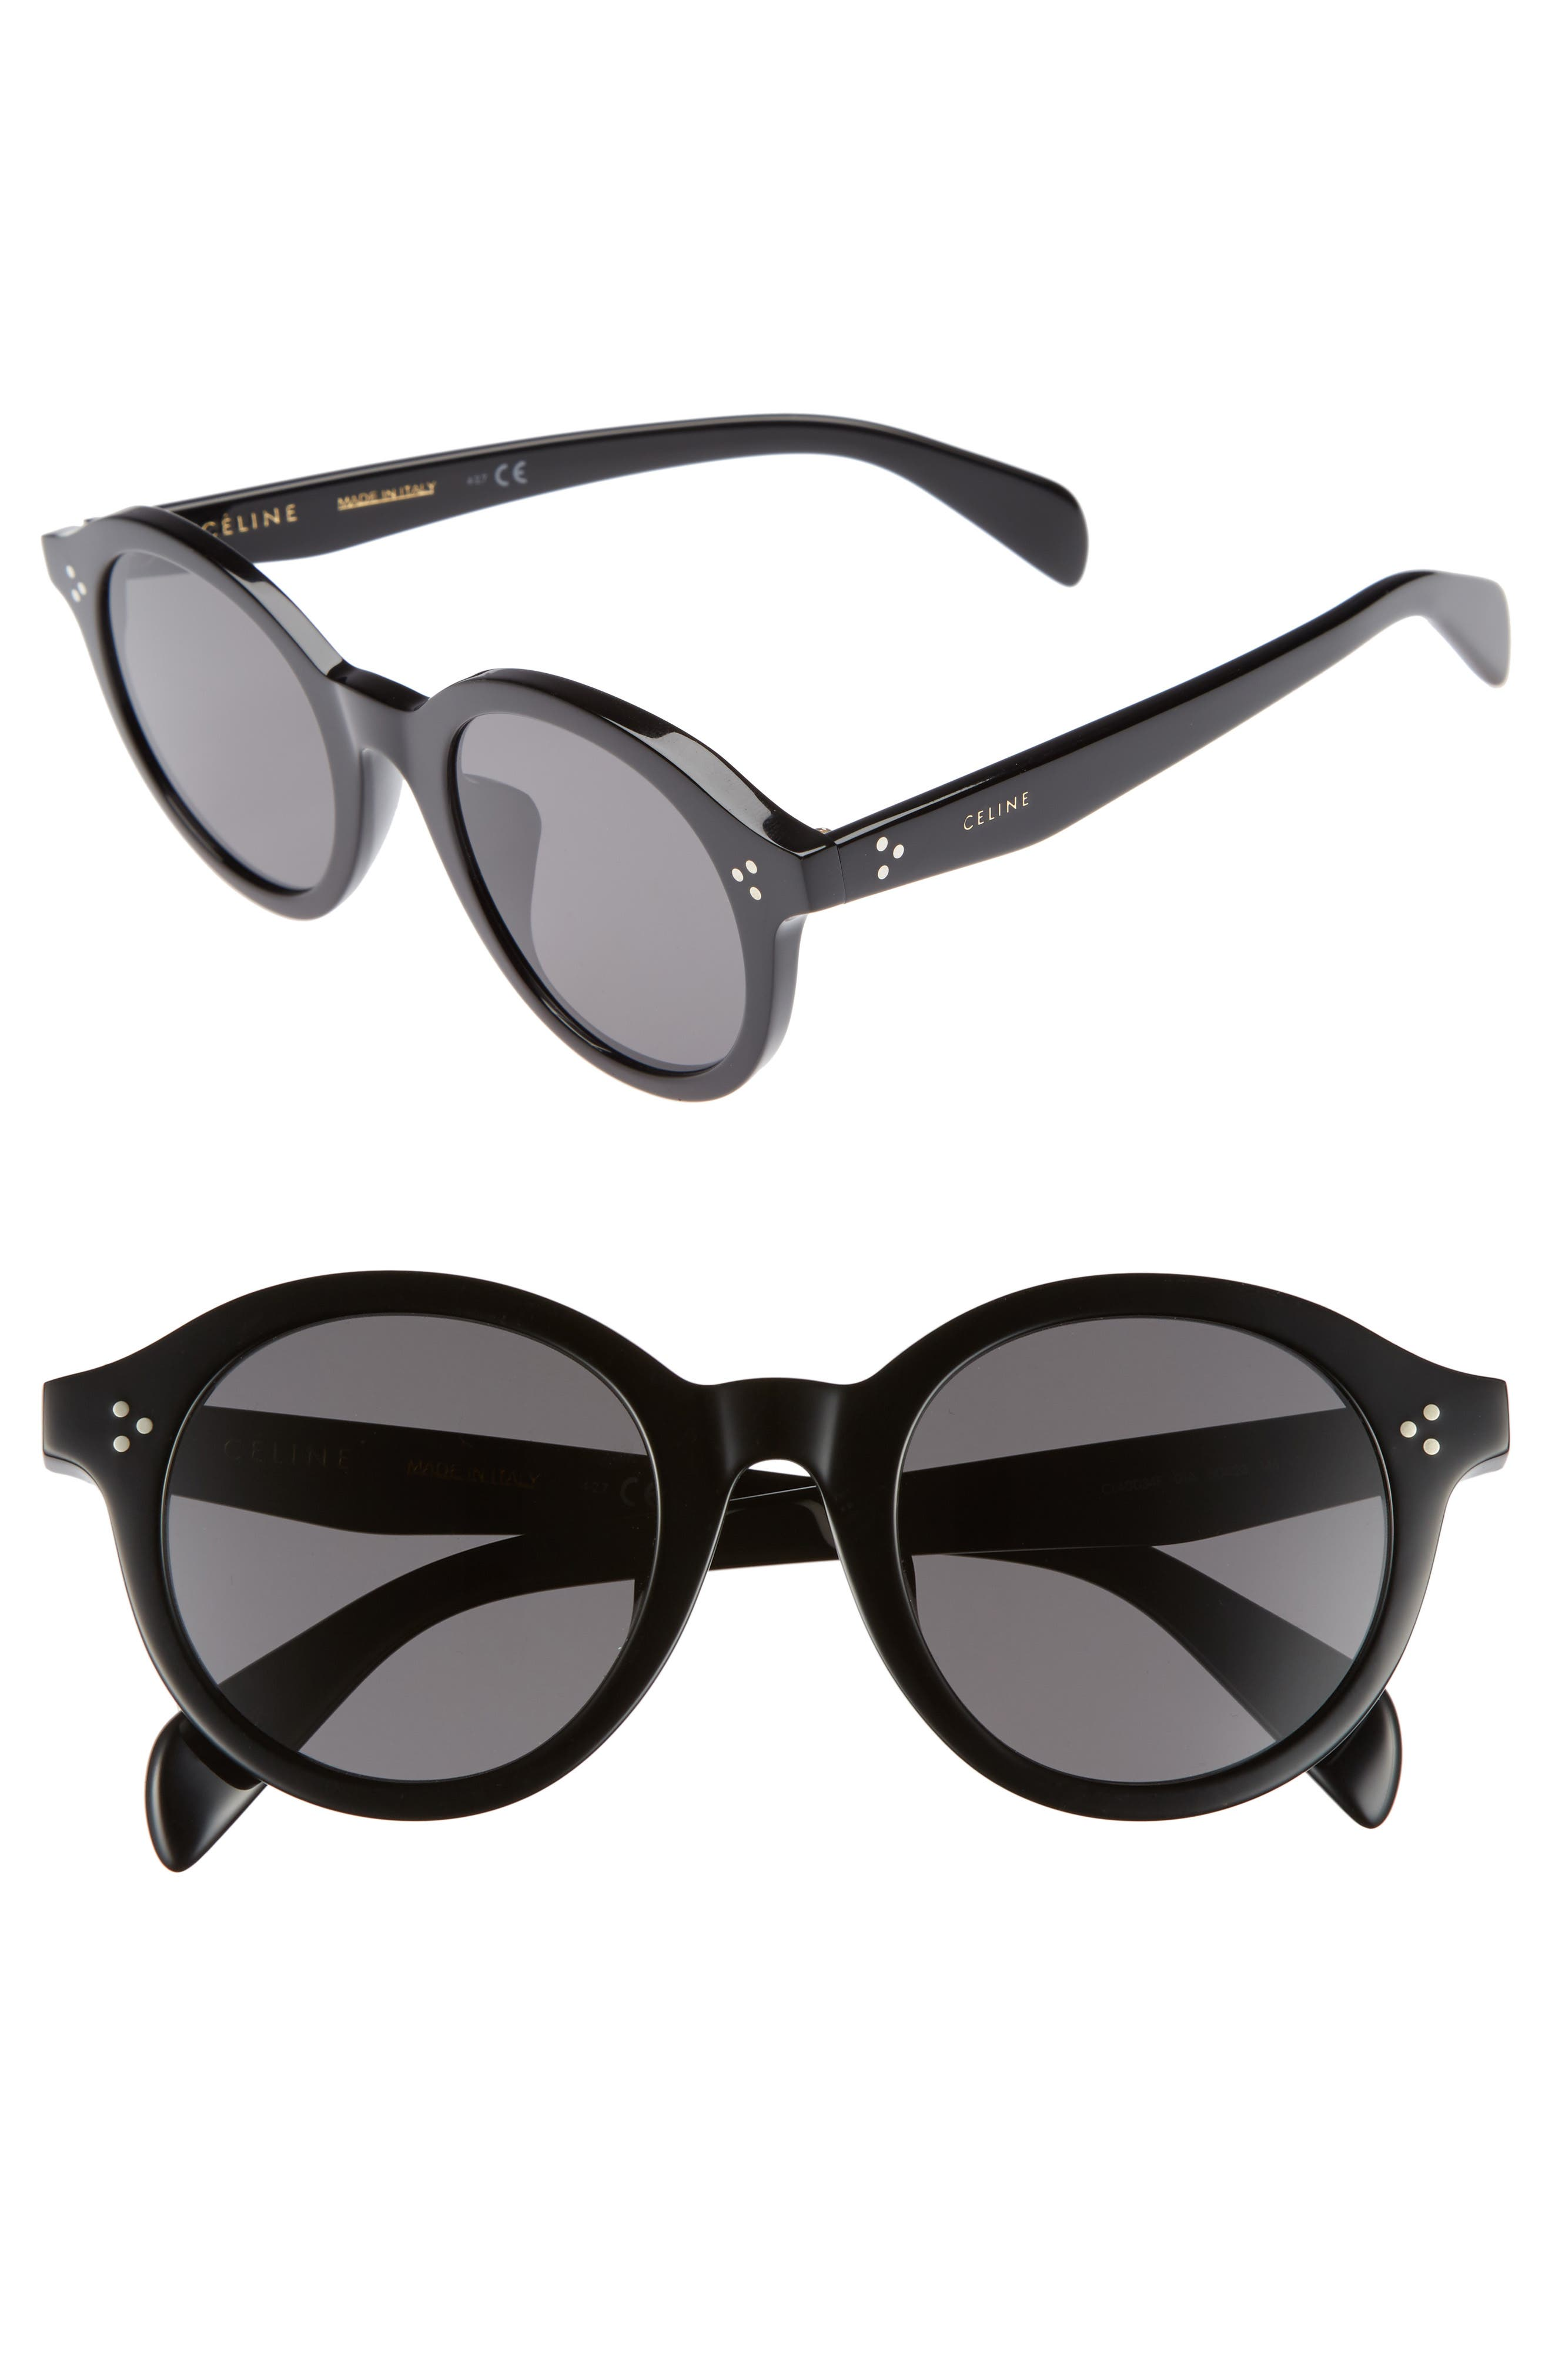 Special Fit 50mm Round Sunglasses,                         Main,                         color, Black/ Smoke